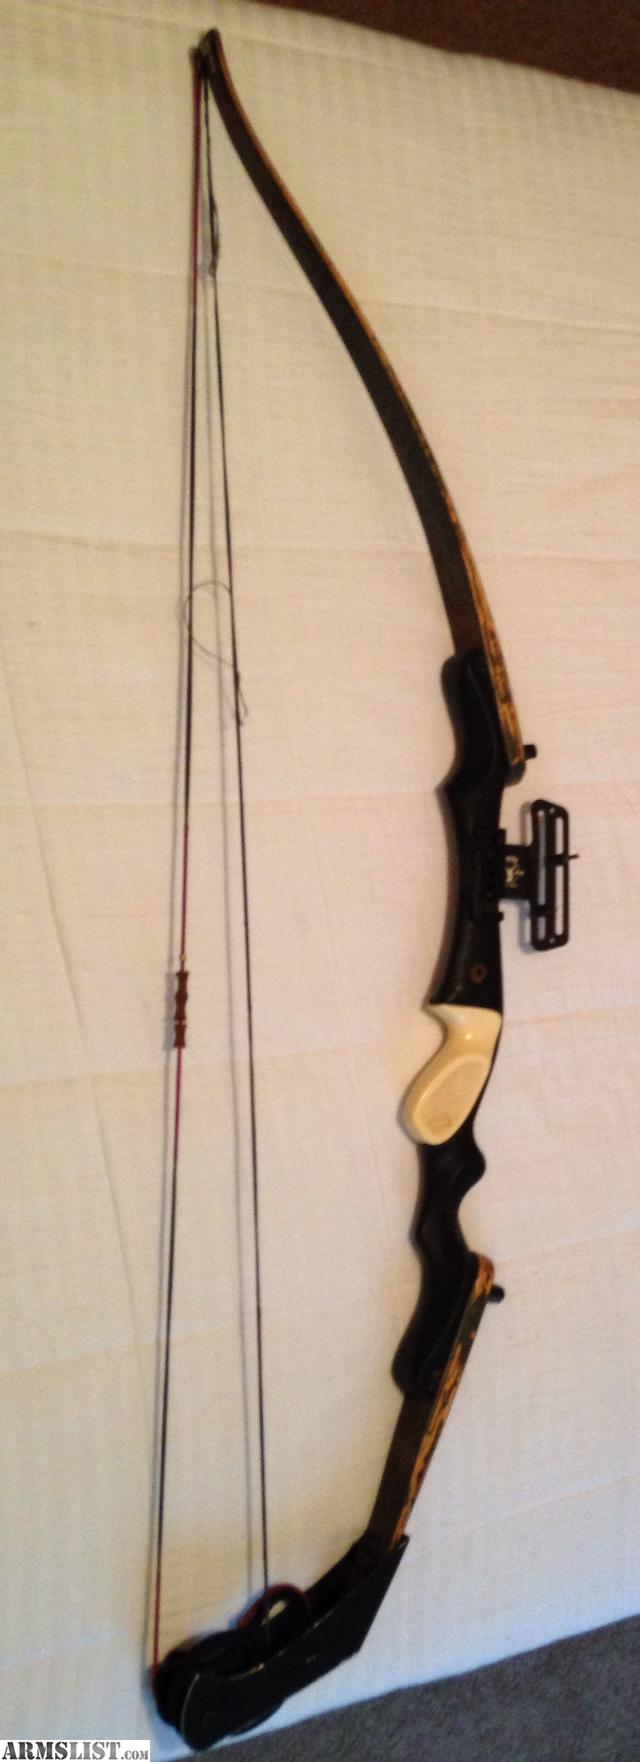 mathews heli m for sale with Wichita Kansas Archery For Sale Trade Hybrid Recurve  Pound Bow on  also Lima Ohio Archery For Sale Trade Mathews Heli M Loaded Like New moreover Raleigh North Carolina Rifles For Sale Trade Del Ton Ar 15 16 Moe further Classifieds additionally Minneapolis Minnesota Archery For Sale Mathews Heli M.